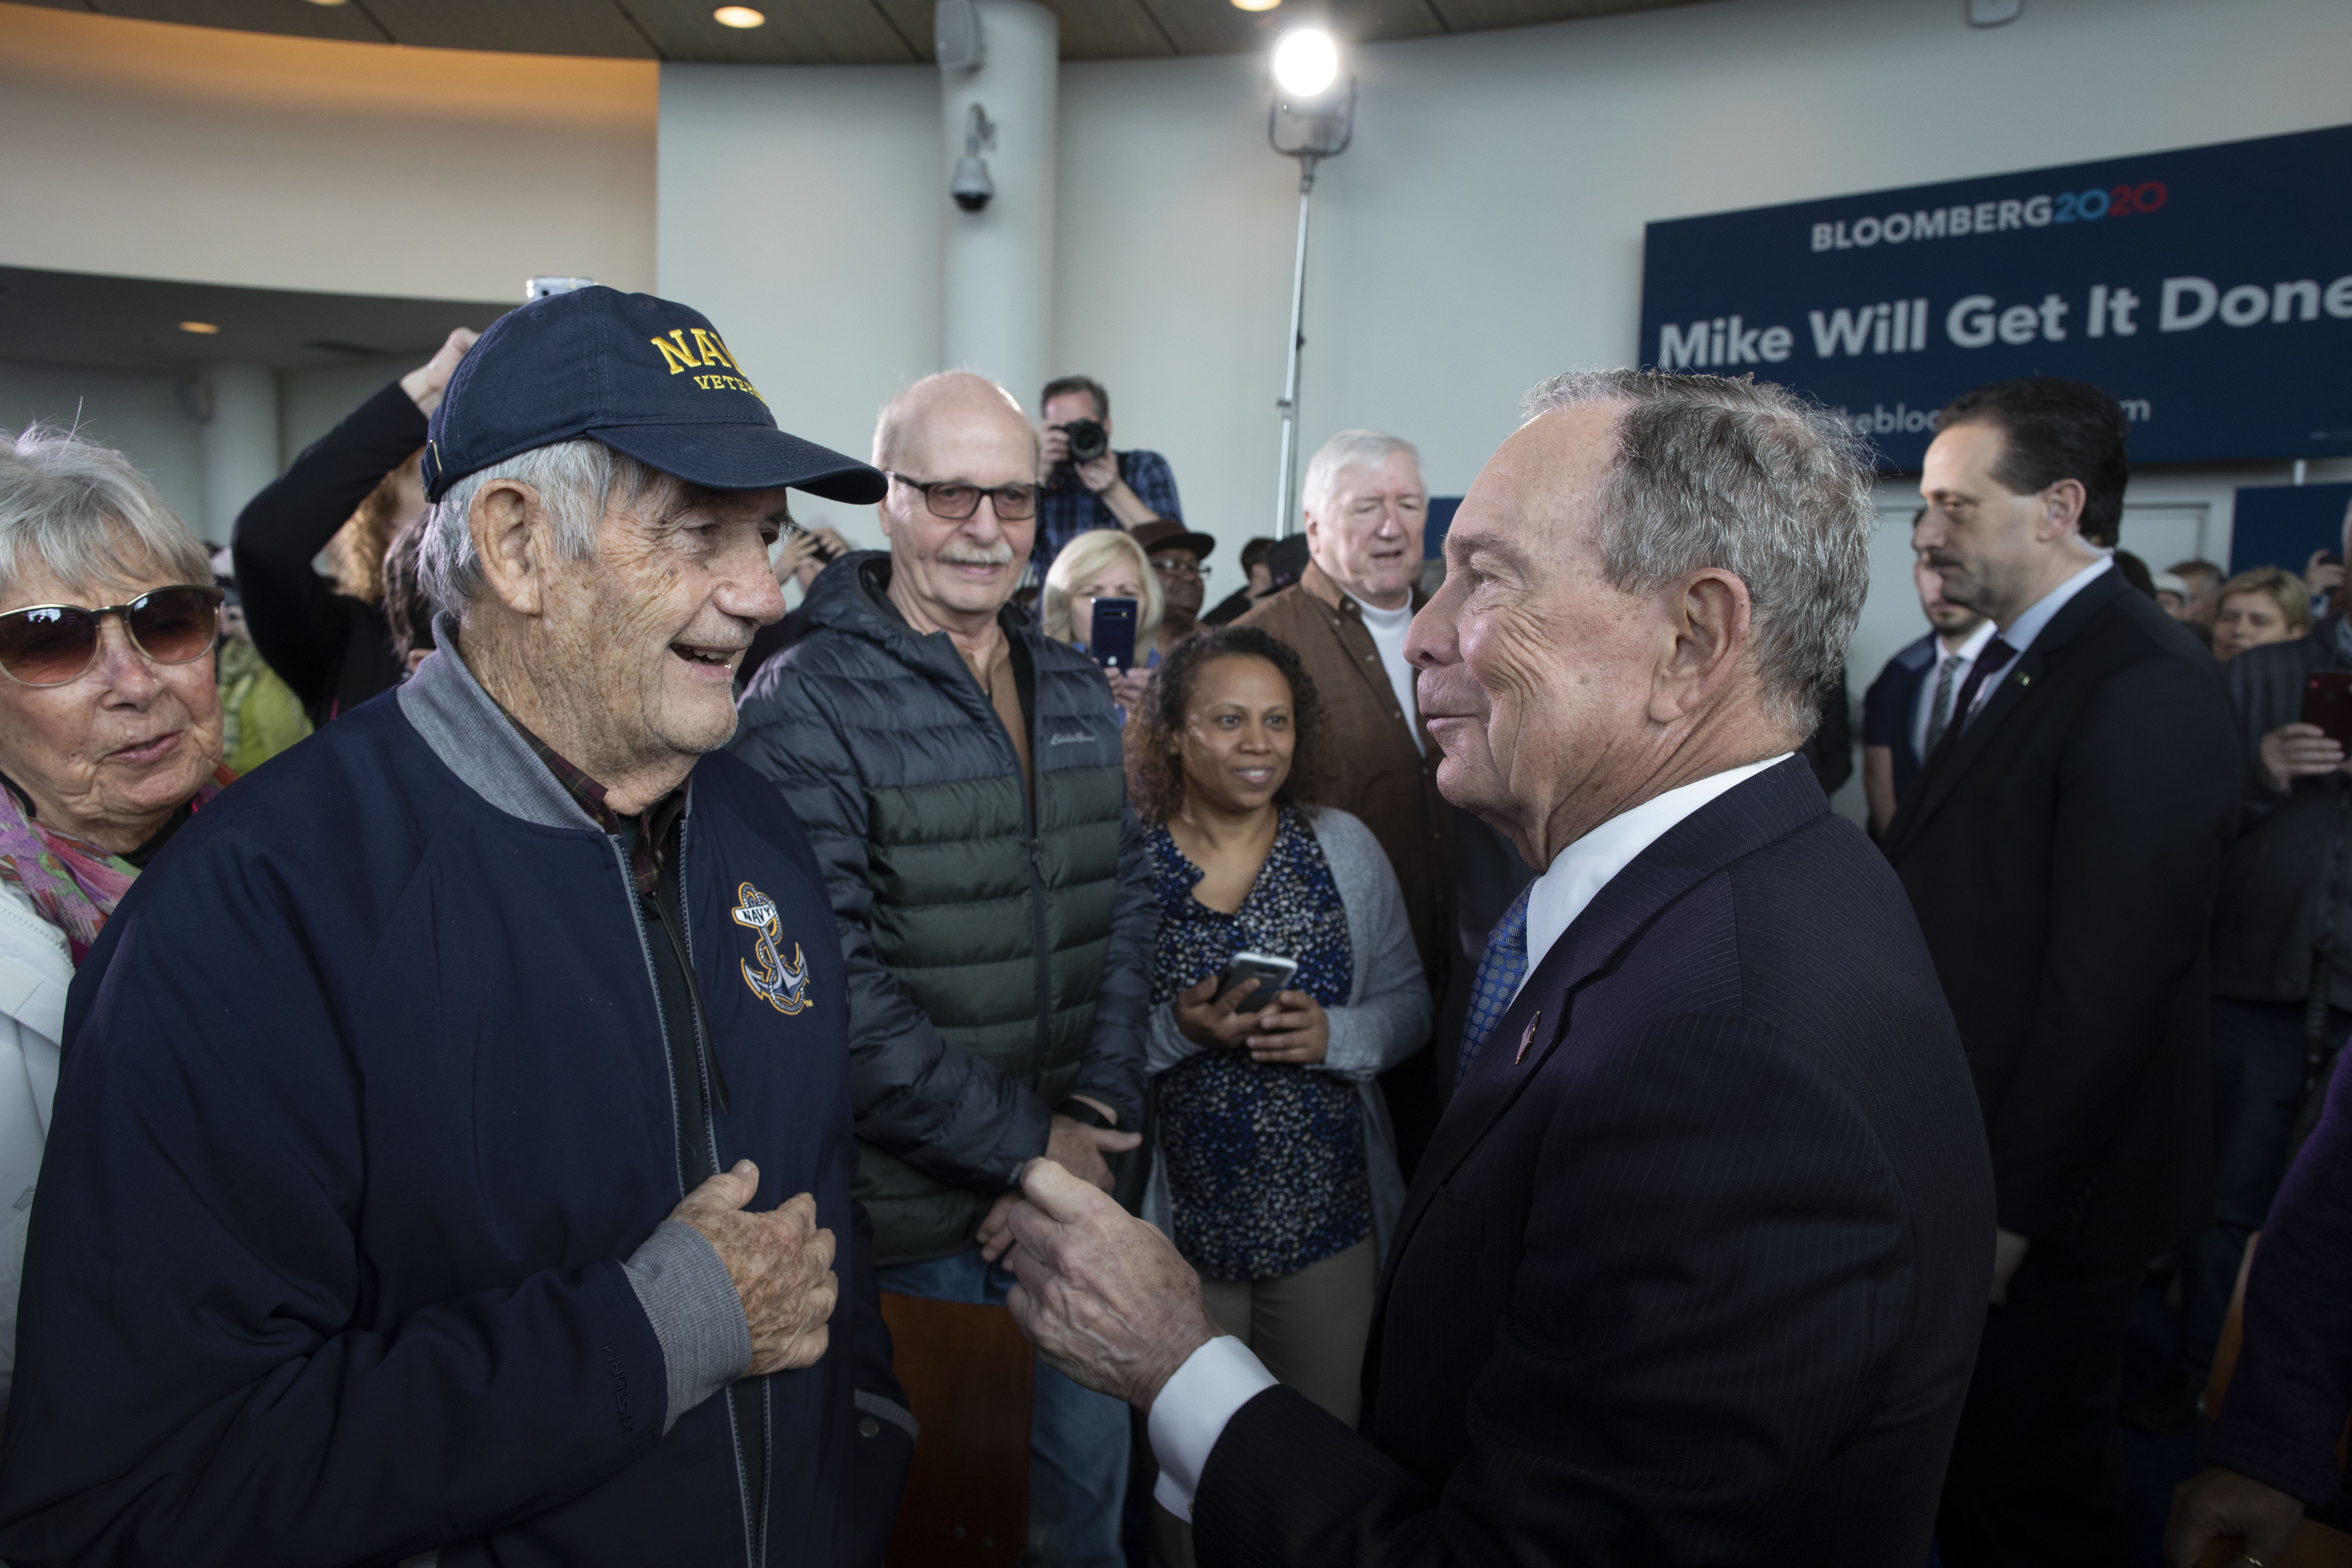 Mike meets veterans during a campaign stop in Norfolk, Virginia.